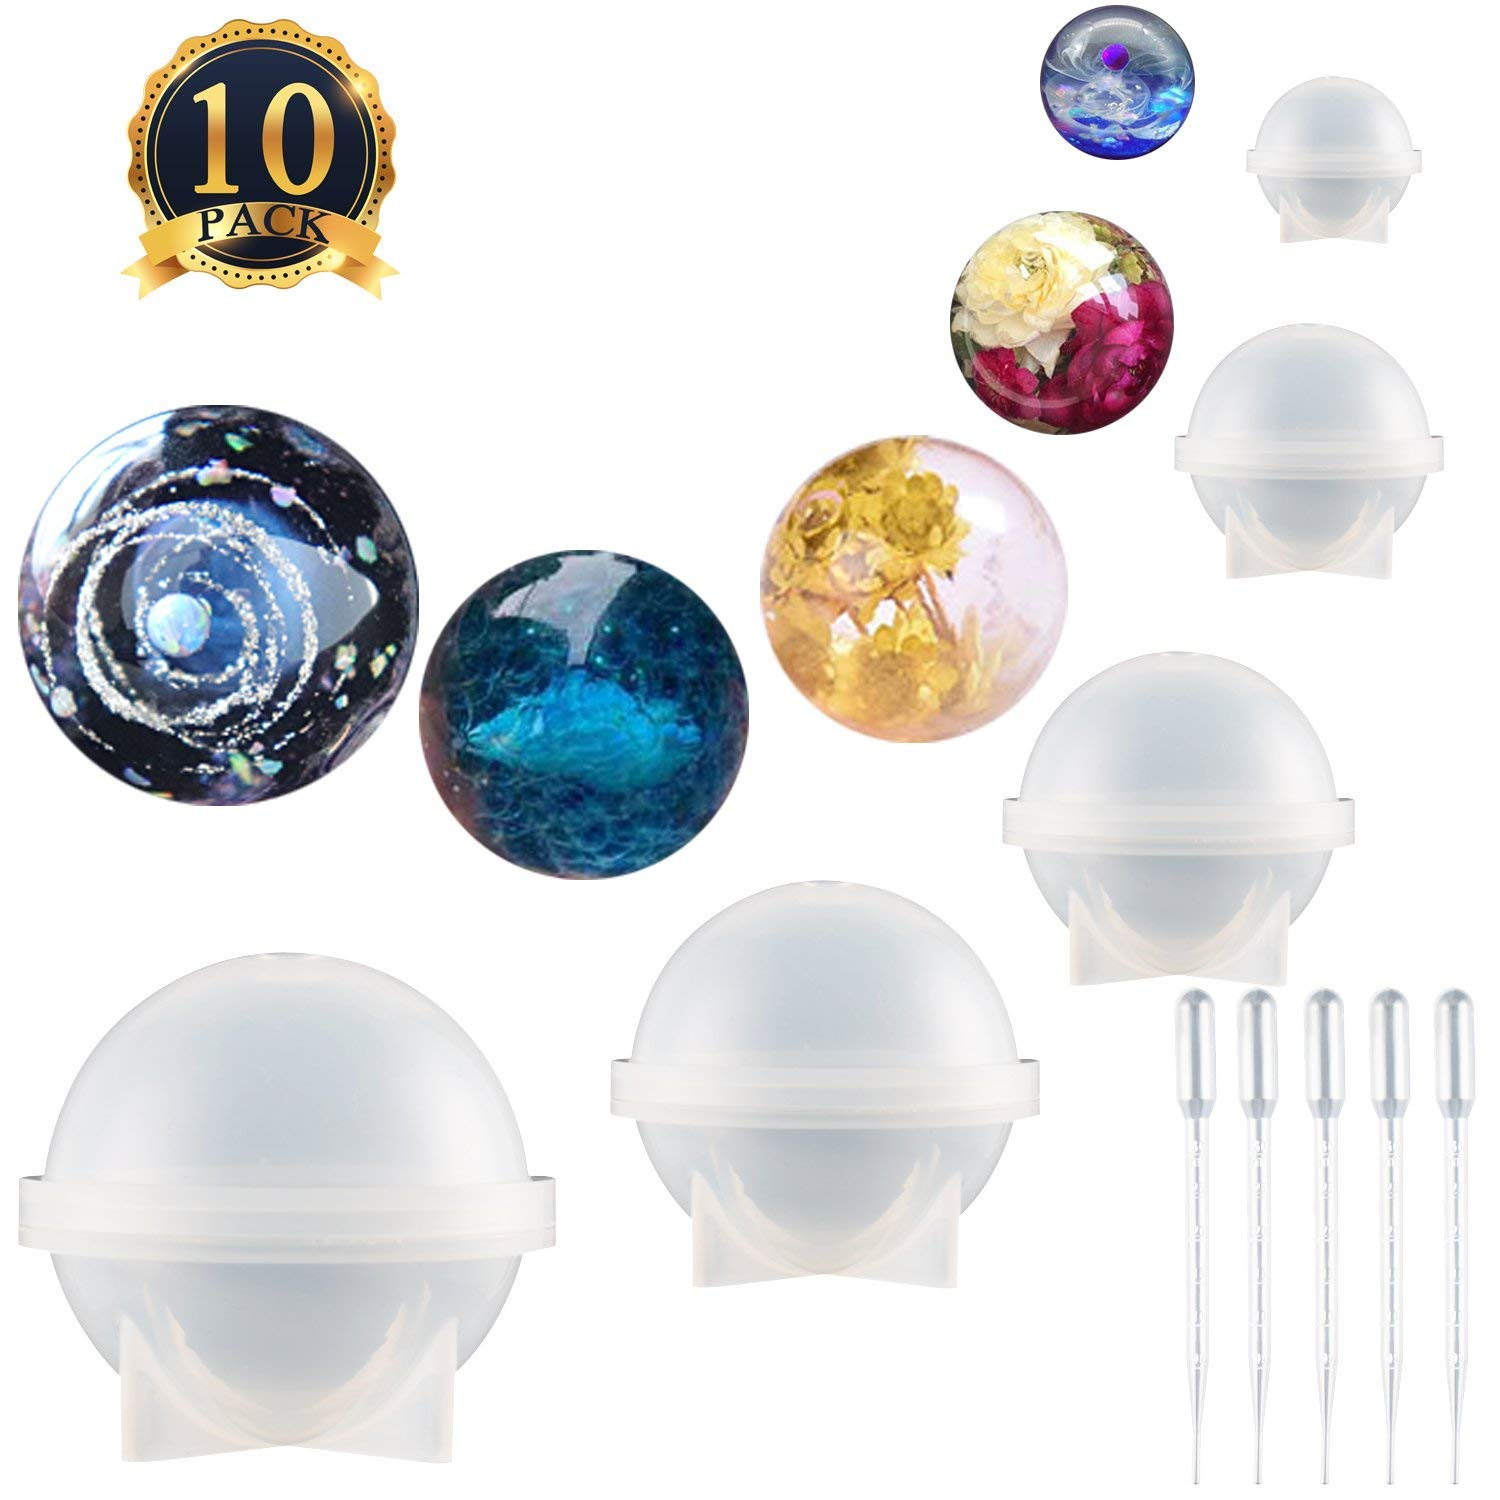 SUBANG 5 Pack Sphere Round Silicone Mold Jewelry Casting Molds Silicone Resin Jewelry Molds with 5 Pack Droppers for Resin Epoxy, Jewelry Making, Candle Wax, Homemade Soap, Bath Bomb